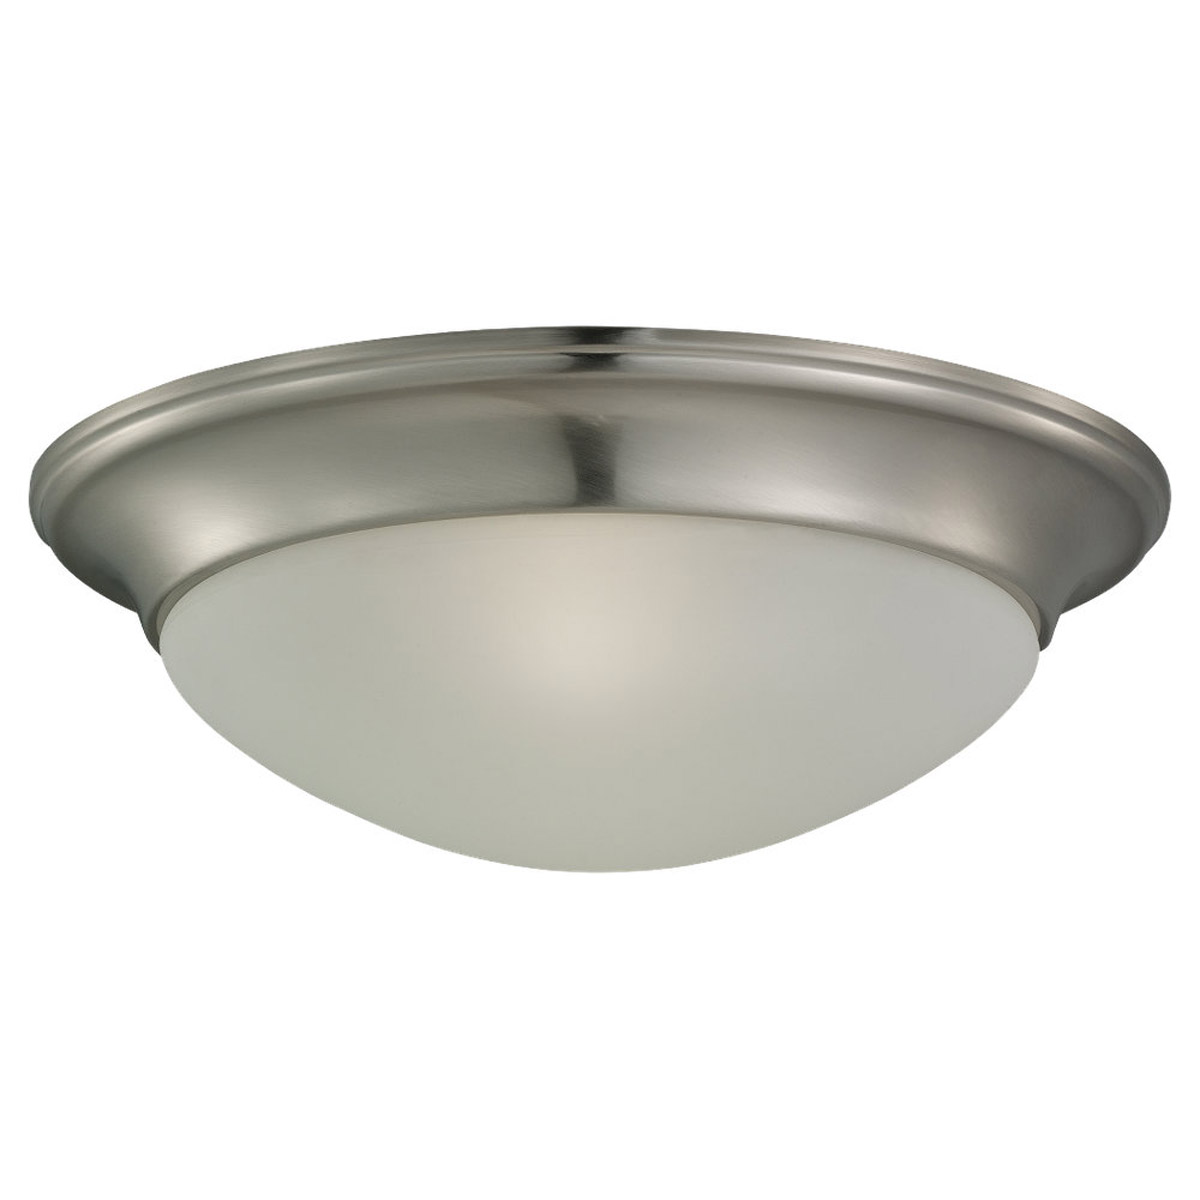 Sea Gull Lighting Nash 2 Light Flush Mount in Brushed Nickel 79435BLE-962